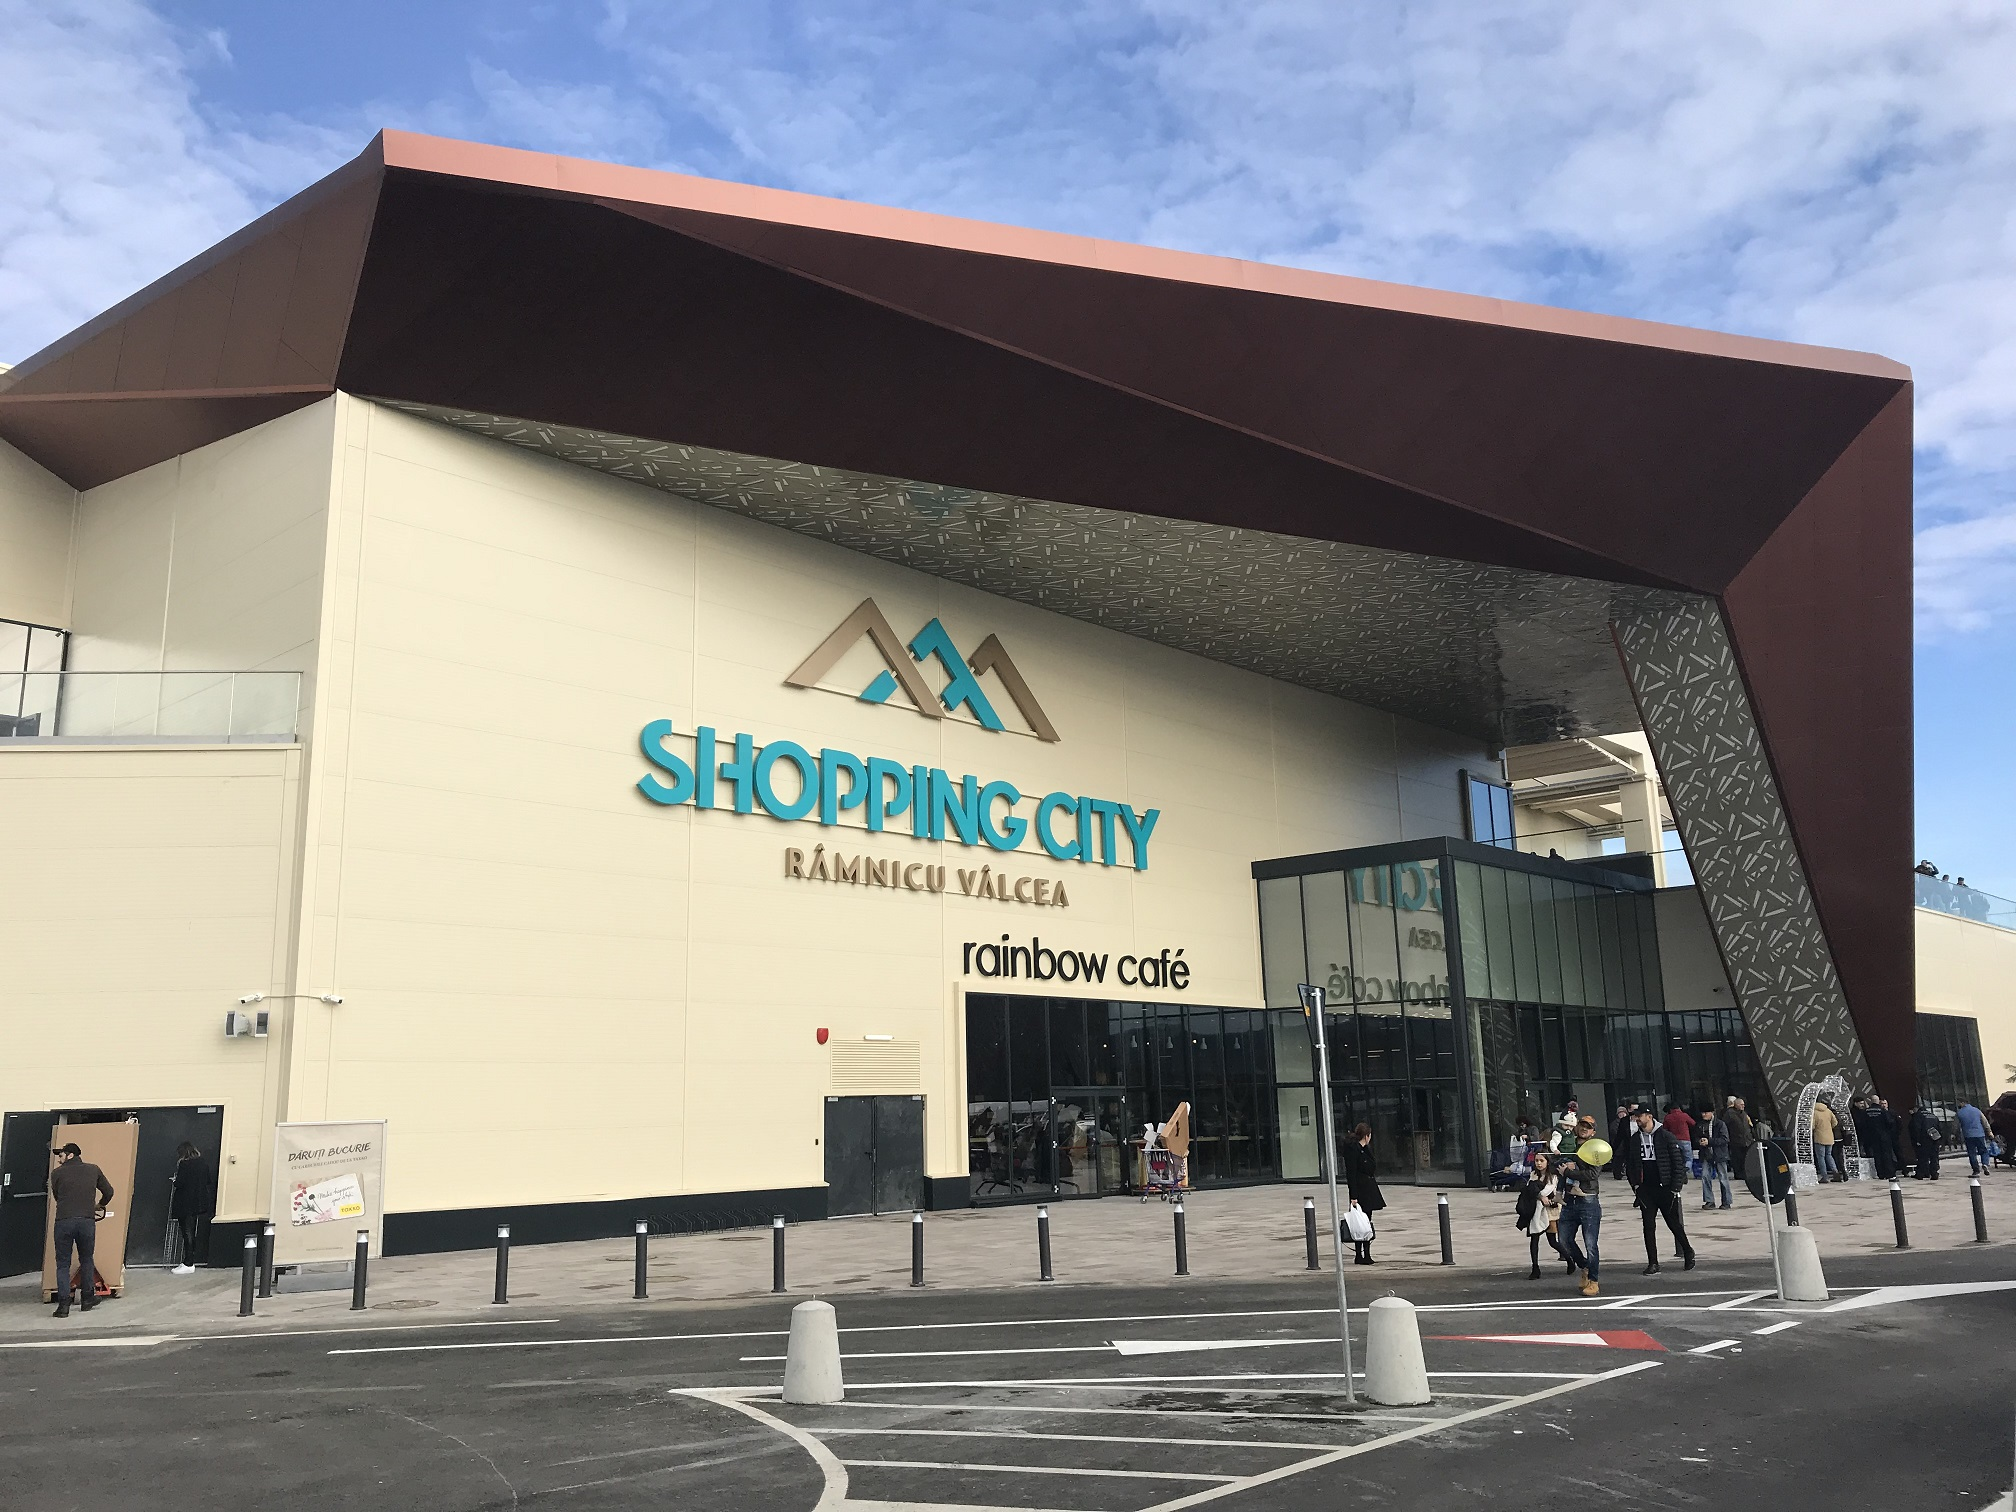 Shopping City Ramnicu Valcea - PALD Engineering 5